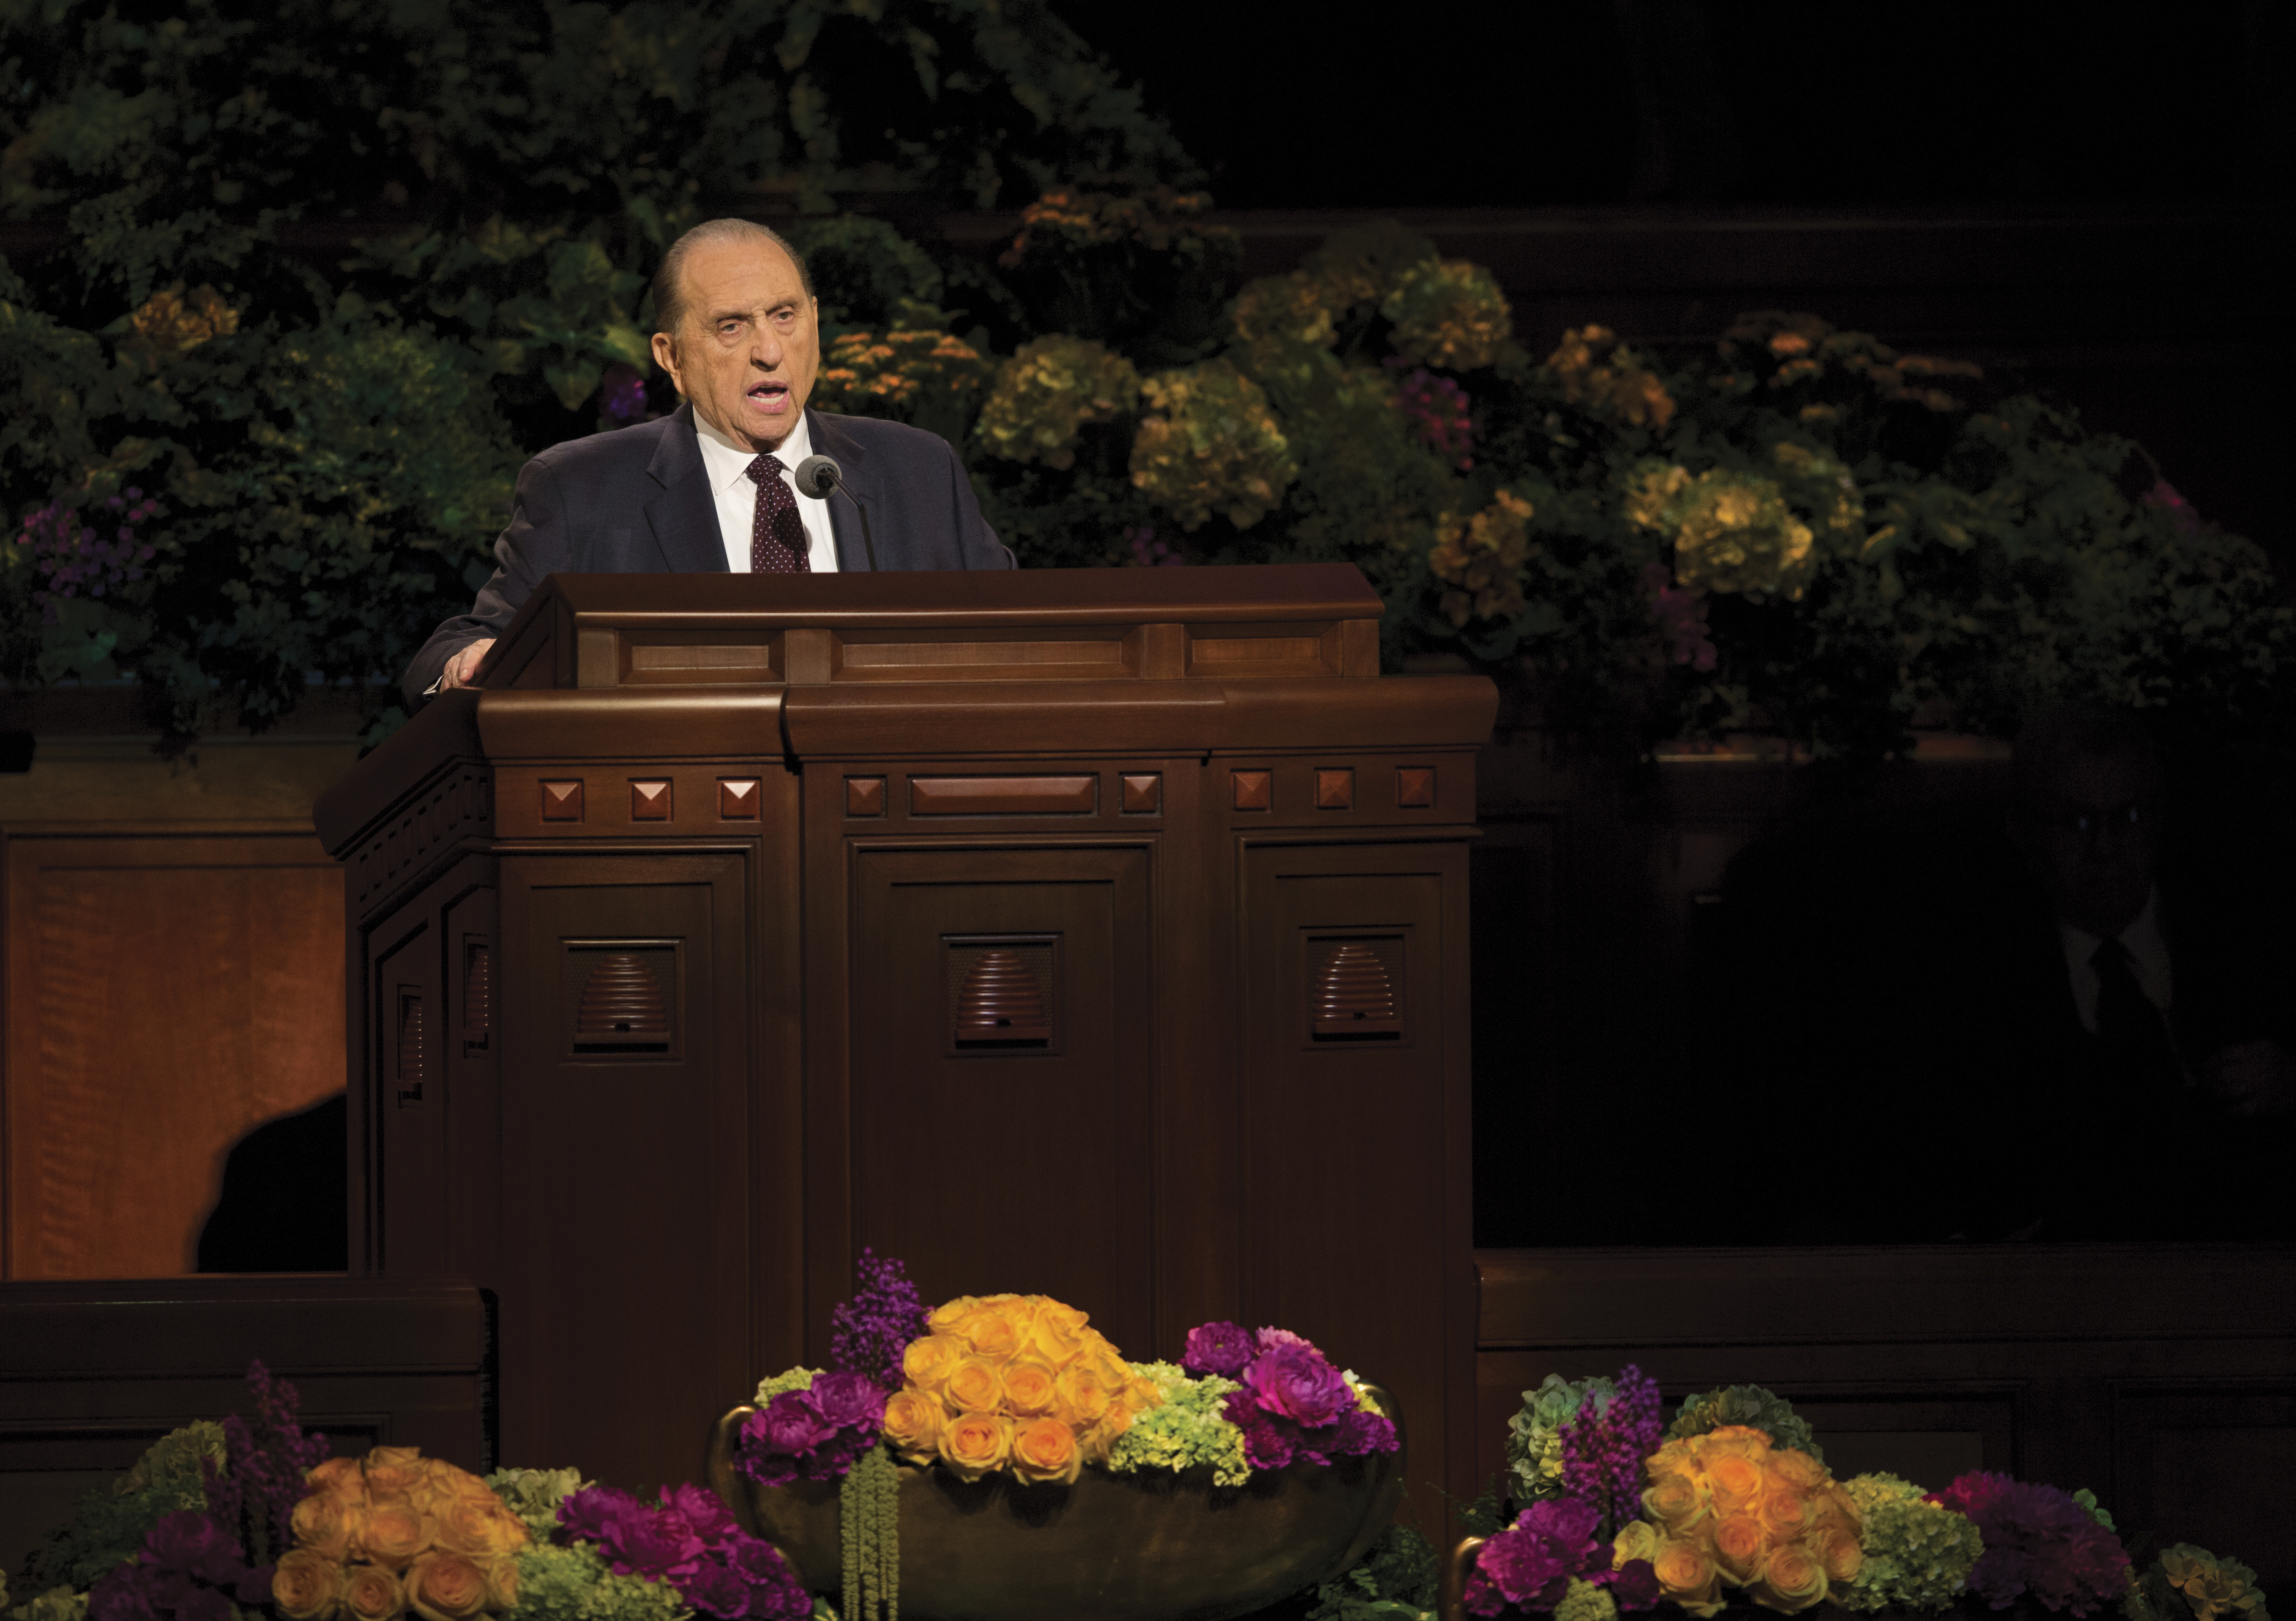 Thomas S. Monson speaking to the congregation at general conference.